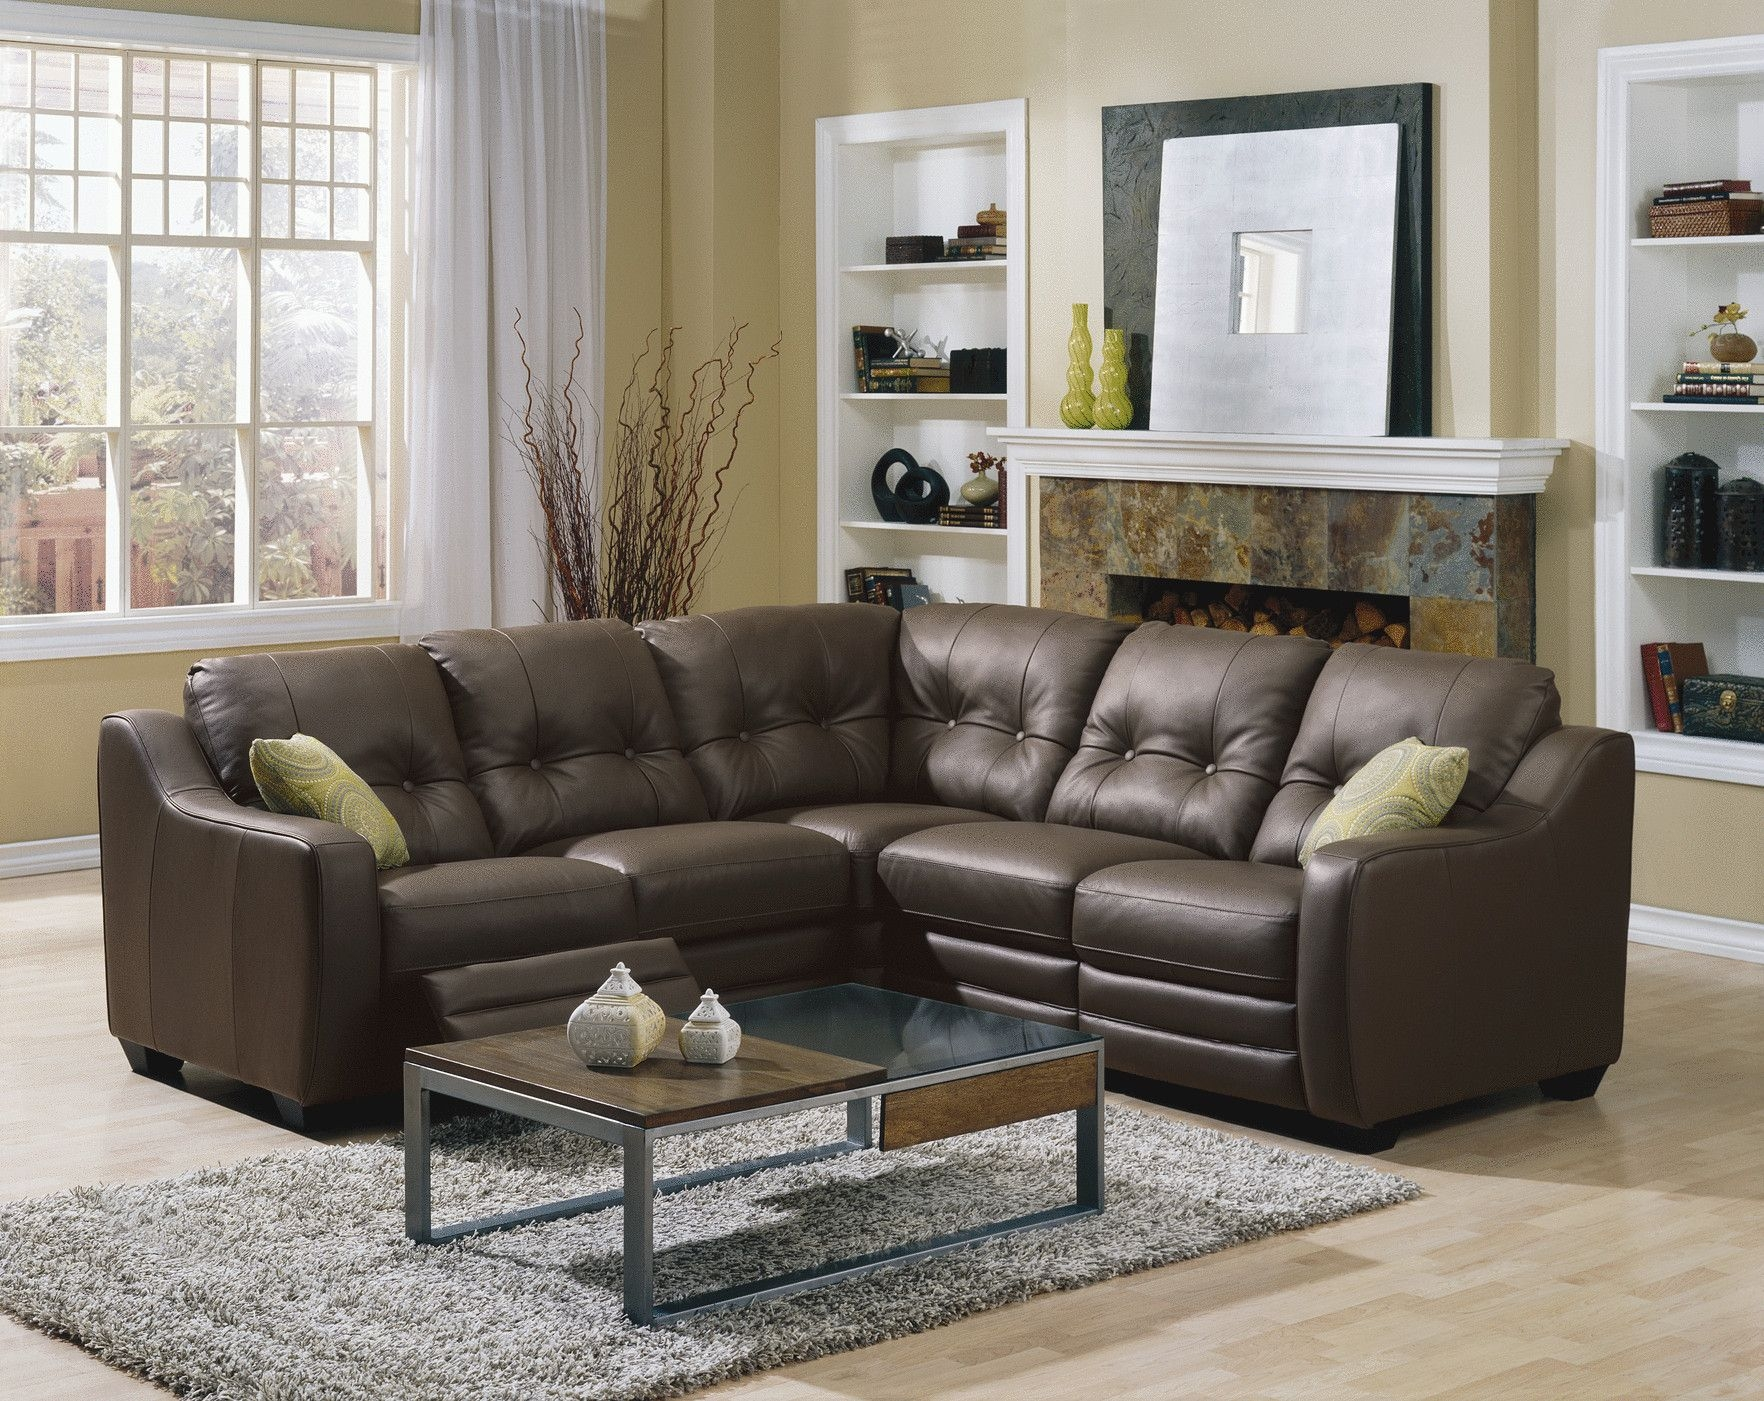 small sectional sofa with recliner visual hunt rh visualhunt com sectional sofas with recliners and cup holders sectional sofas with recliners big lots